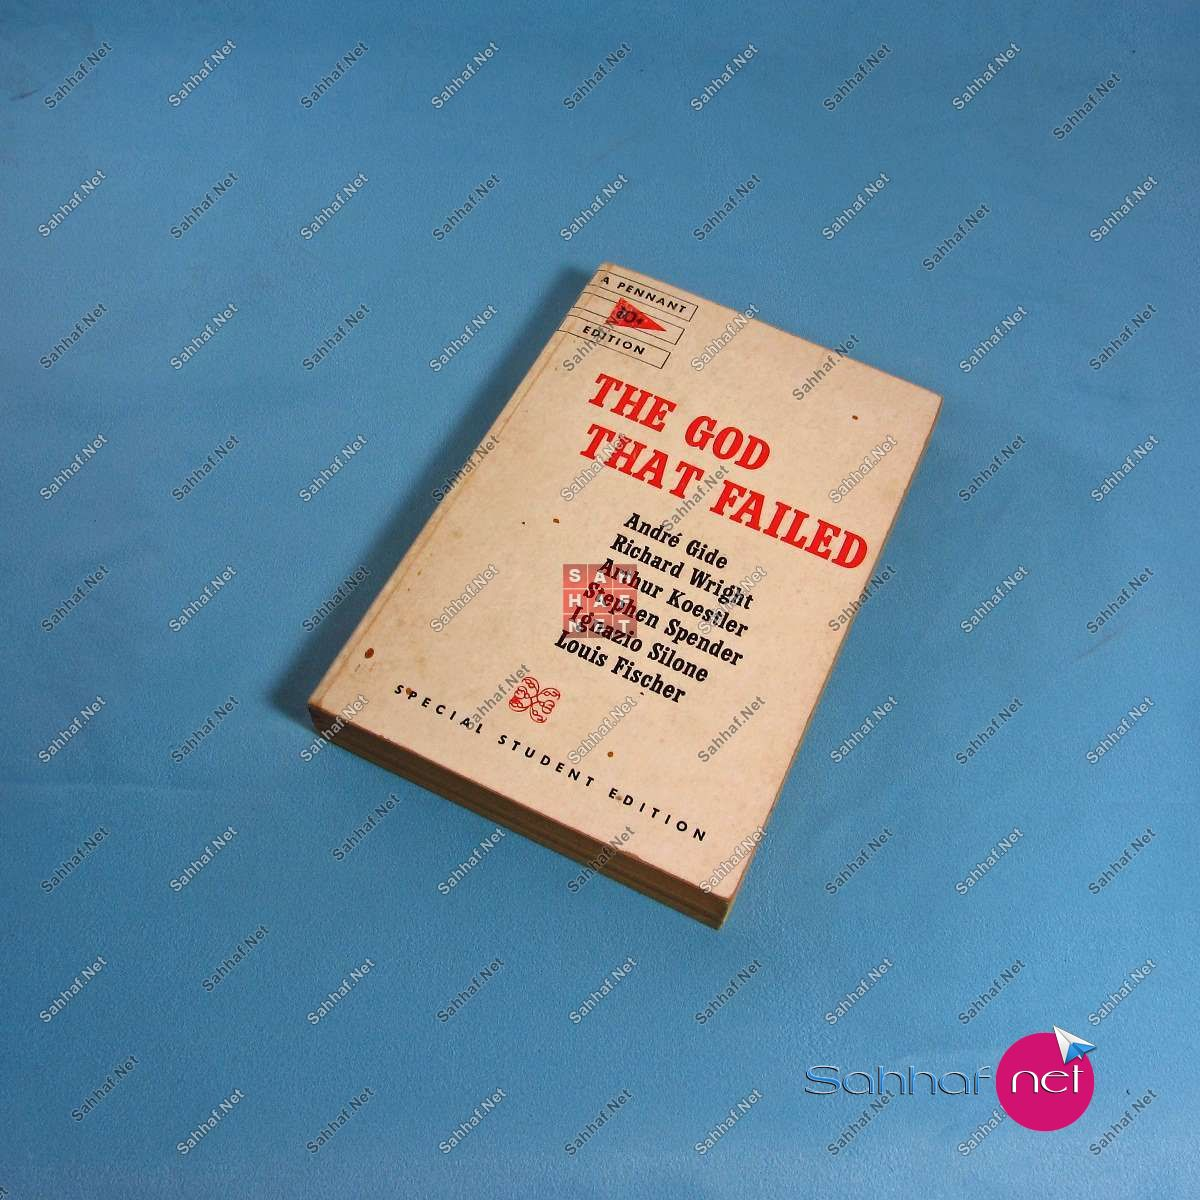 THE GOD THAT FAILED – Andre Gide Kitap